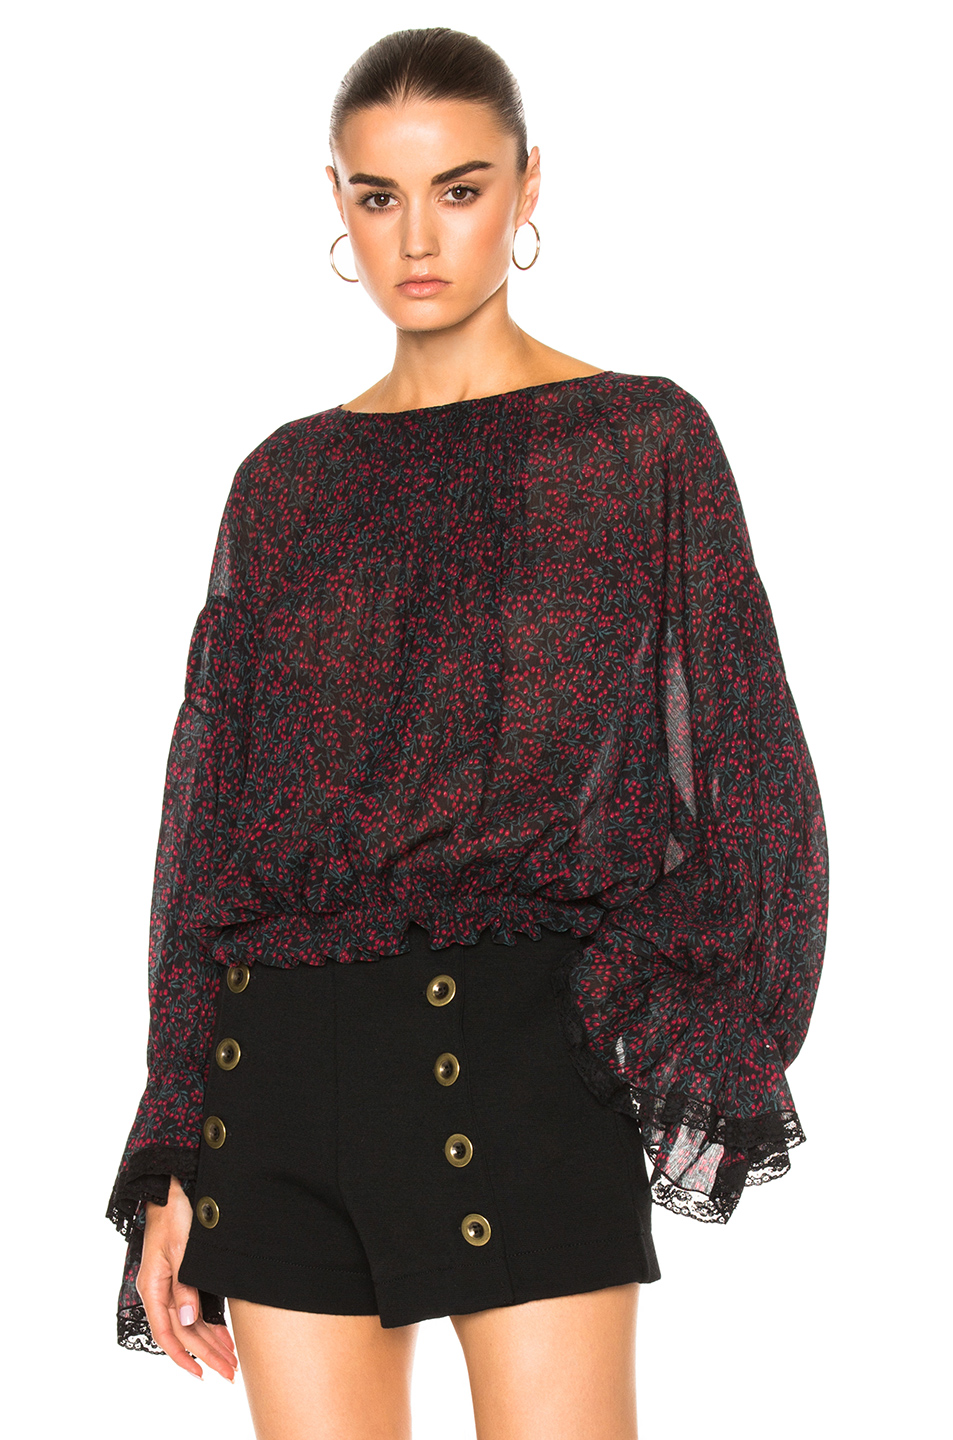 Chloe Cherry Print On Crepon Blouse in Floral,Green,Red